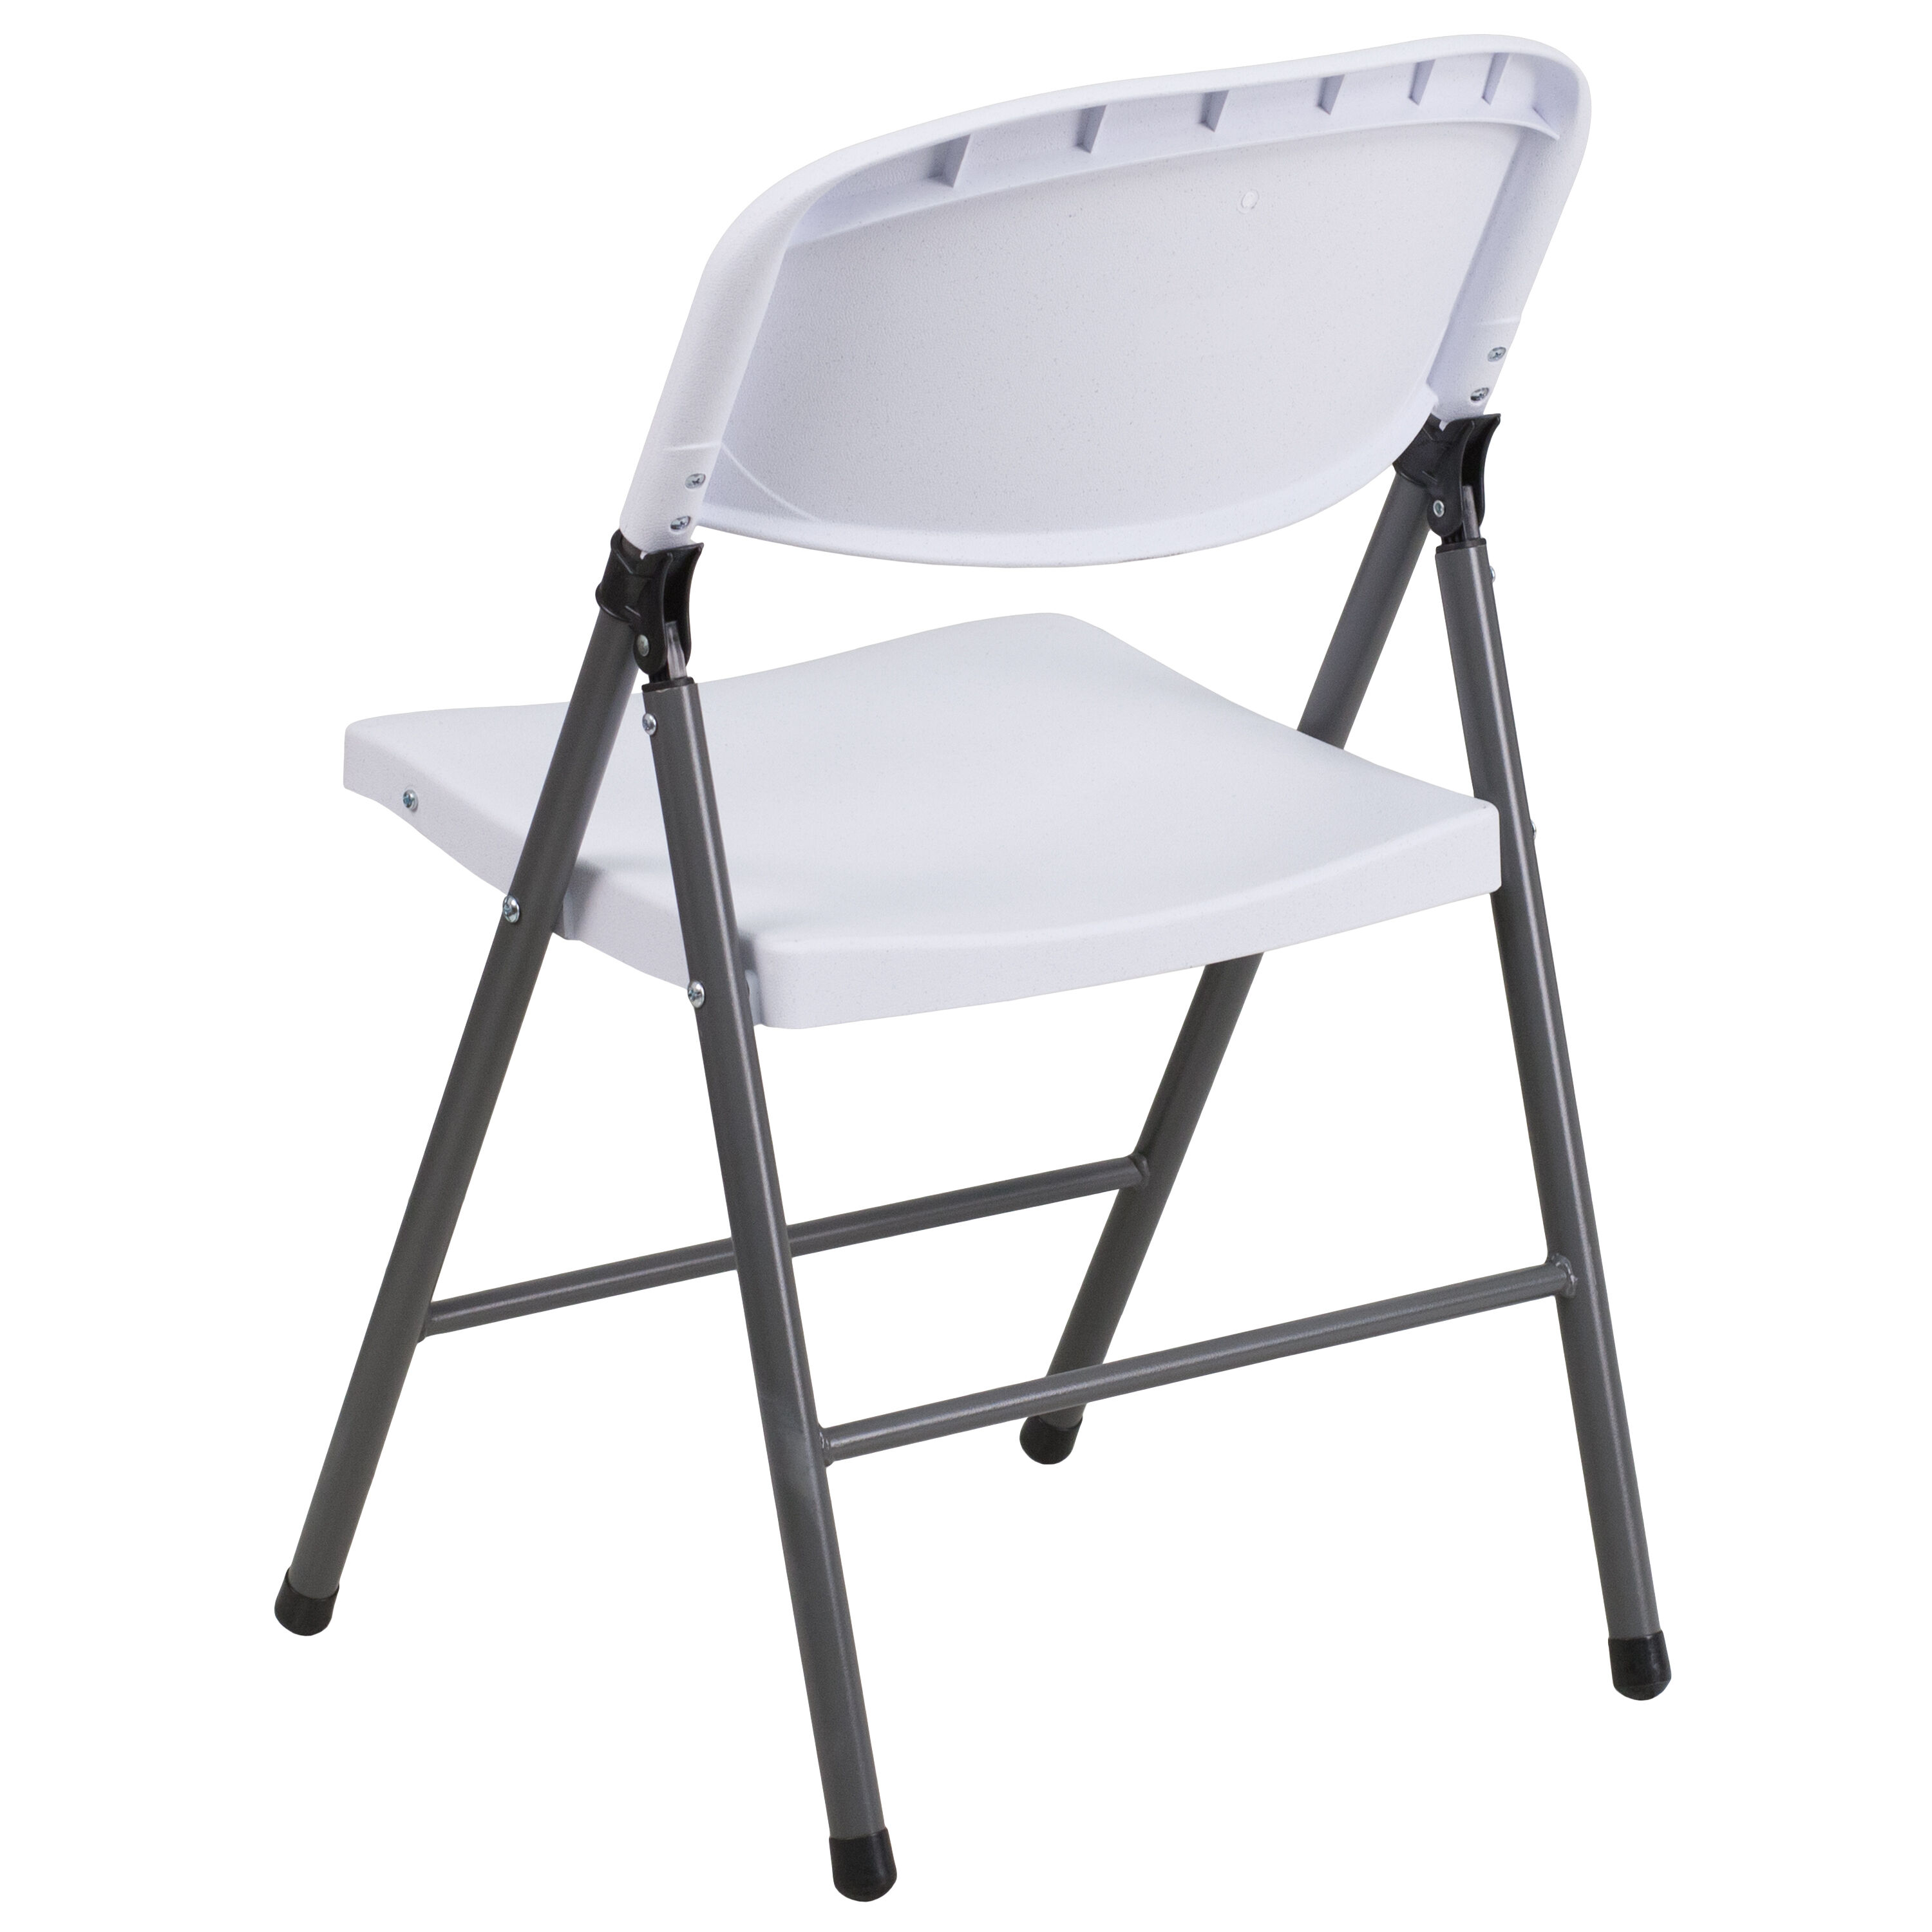 Capacity Granite White Plastic Folding Chair With Charcoal Frame Is ...